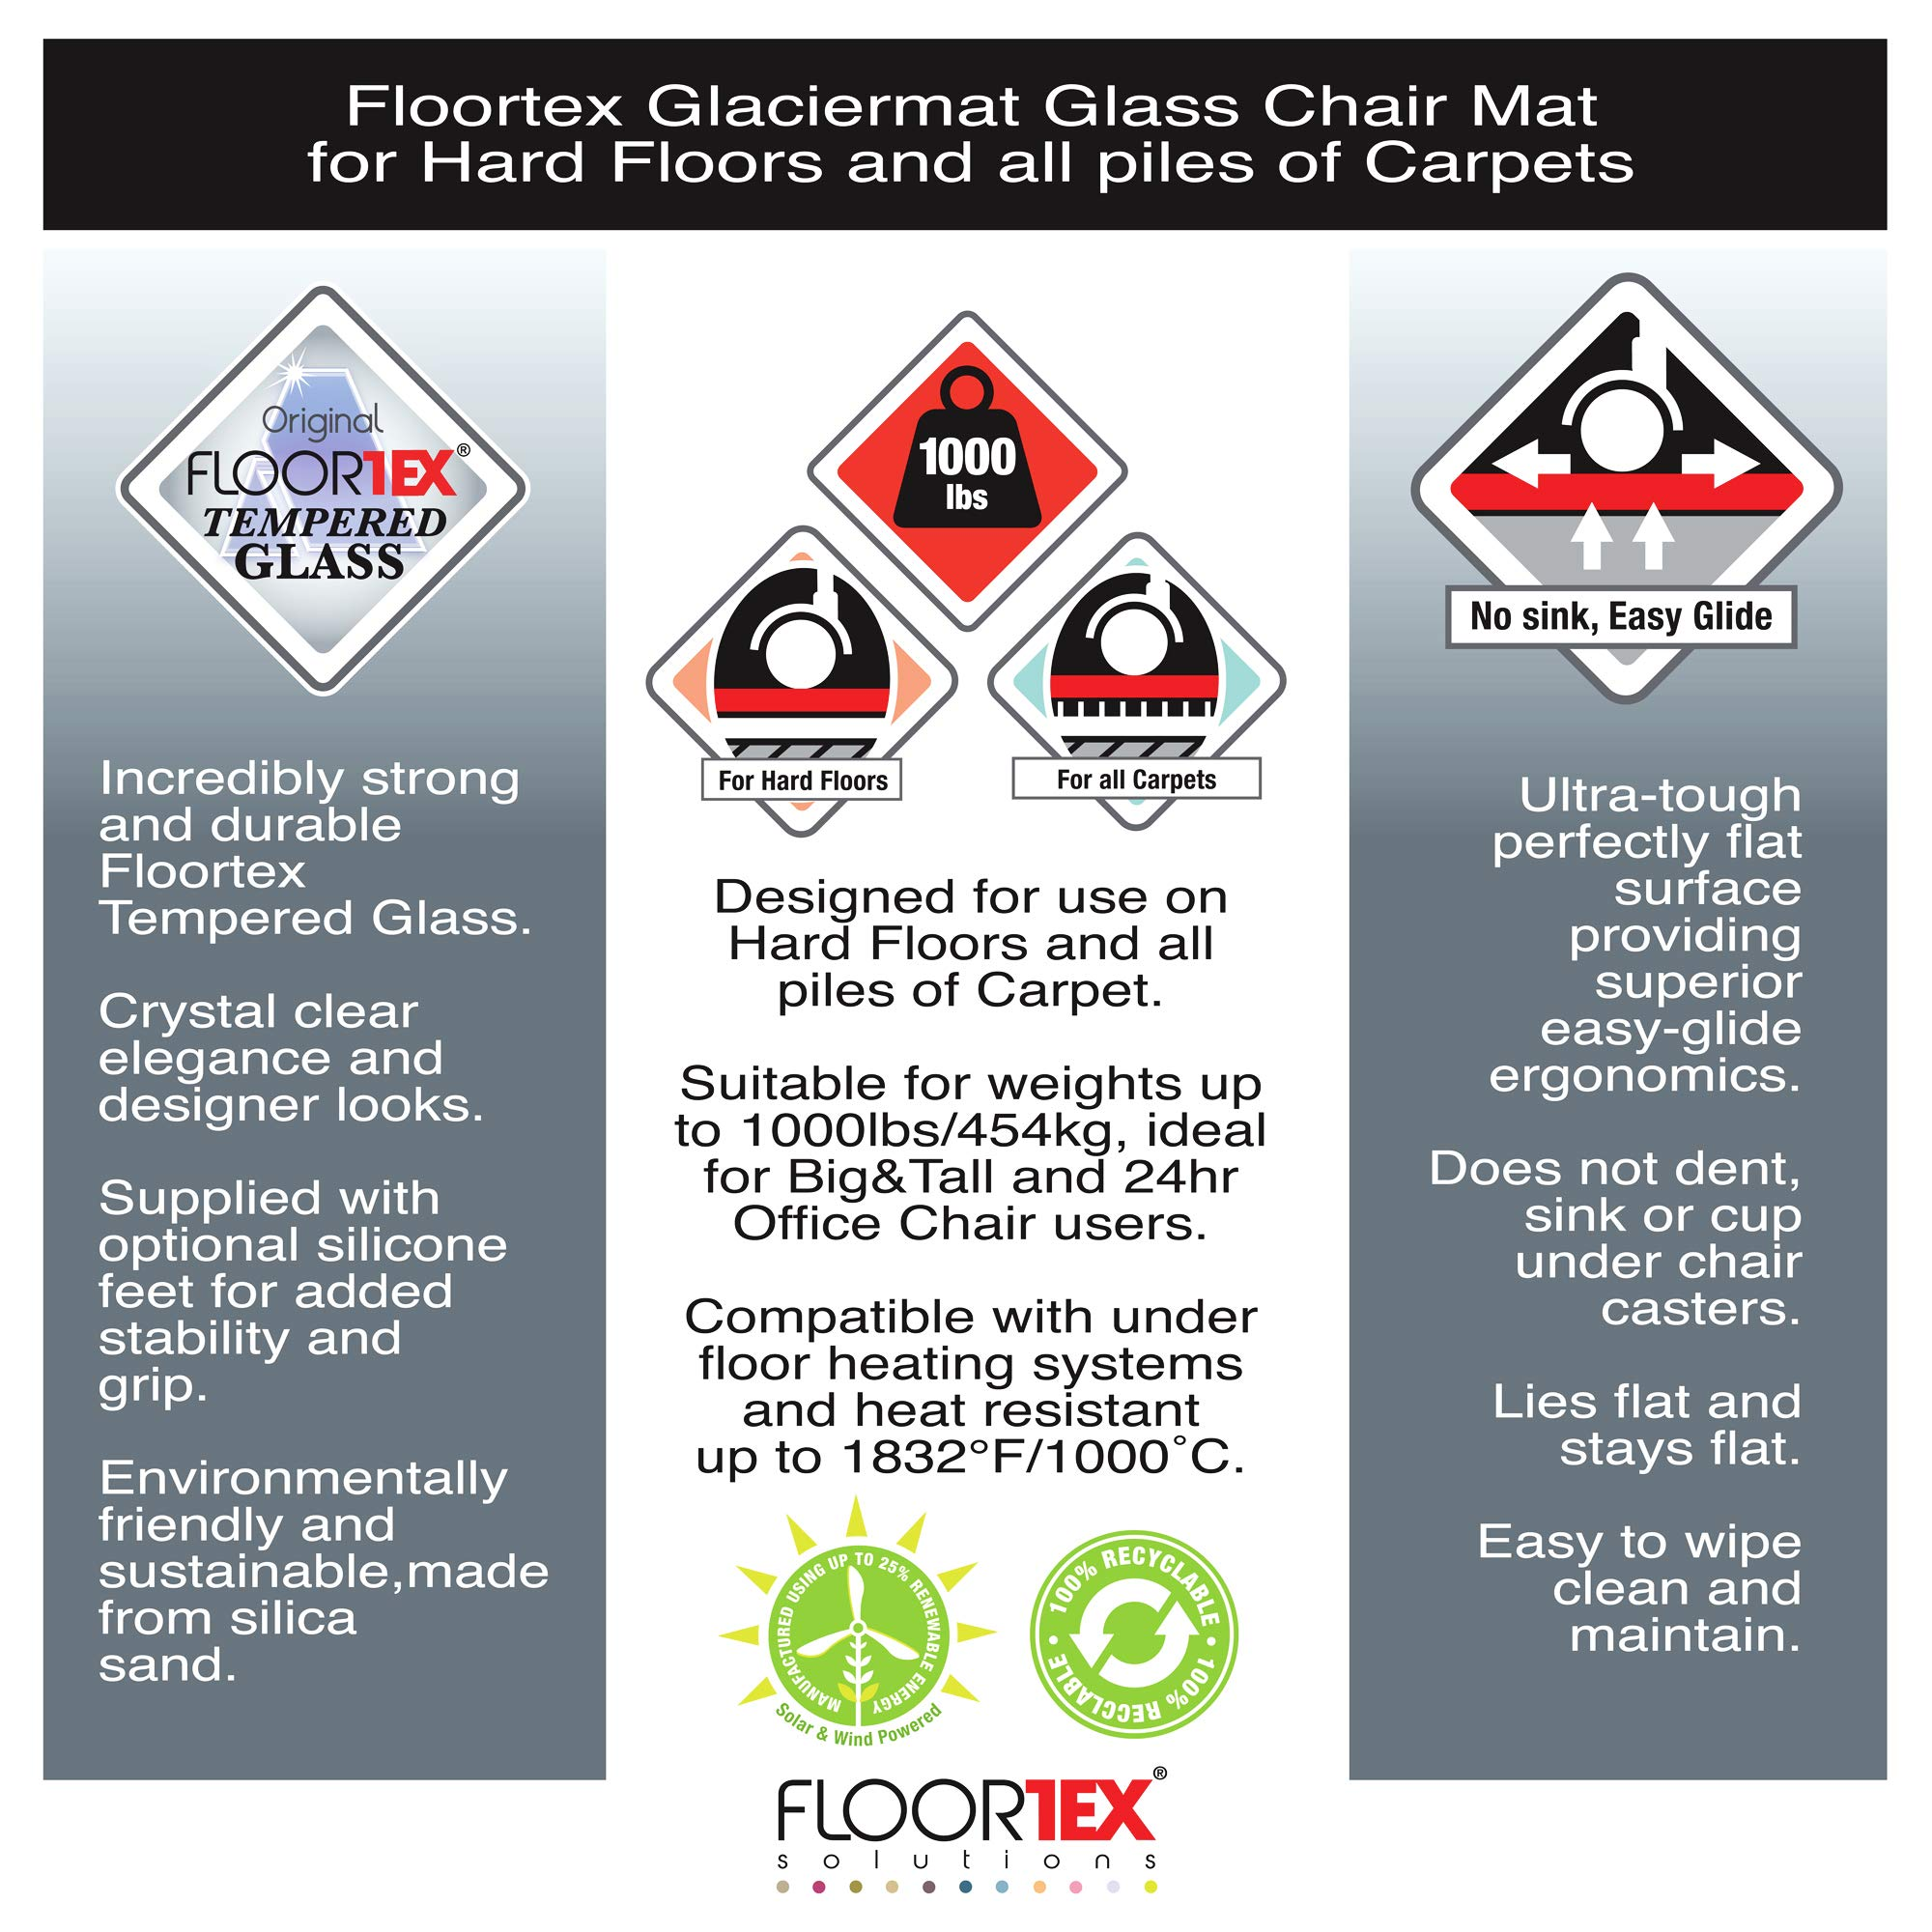 Floortex Cleartex Glaciermat, Reinforced Glass Executive Chair Mat for Hard Floors and All Pile Carpets, 36'' x 48'', Crystal Clear (FC123648EG) by Floortex (Image #7)